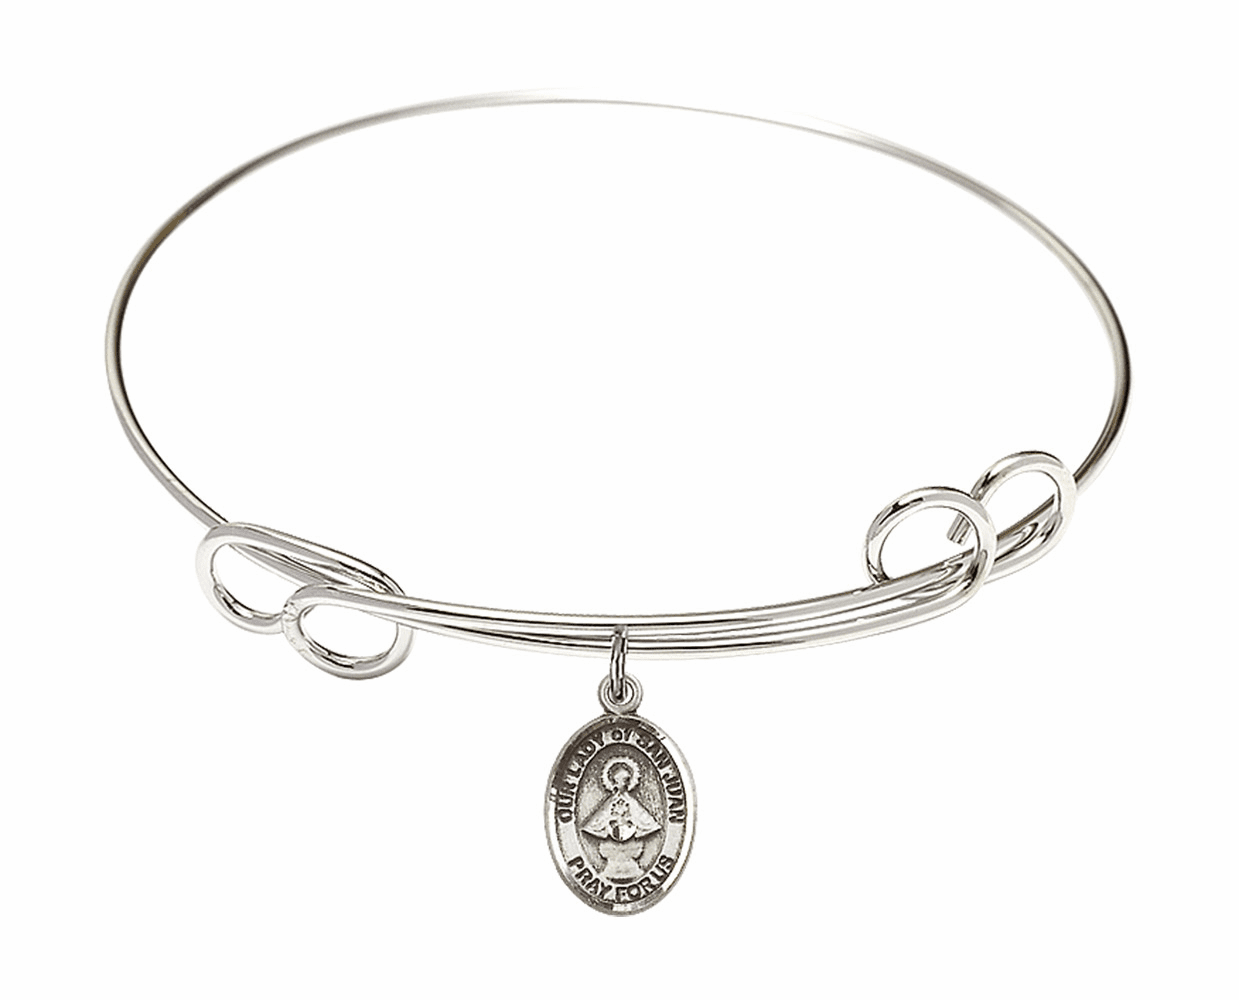 Round Loop Our Lady of San Juan Bangle Charm Bracelet by Bliss